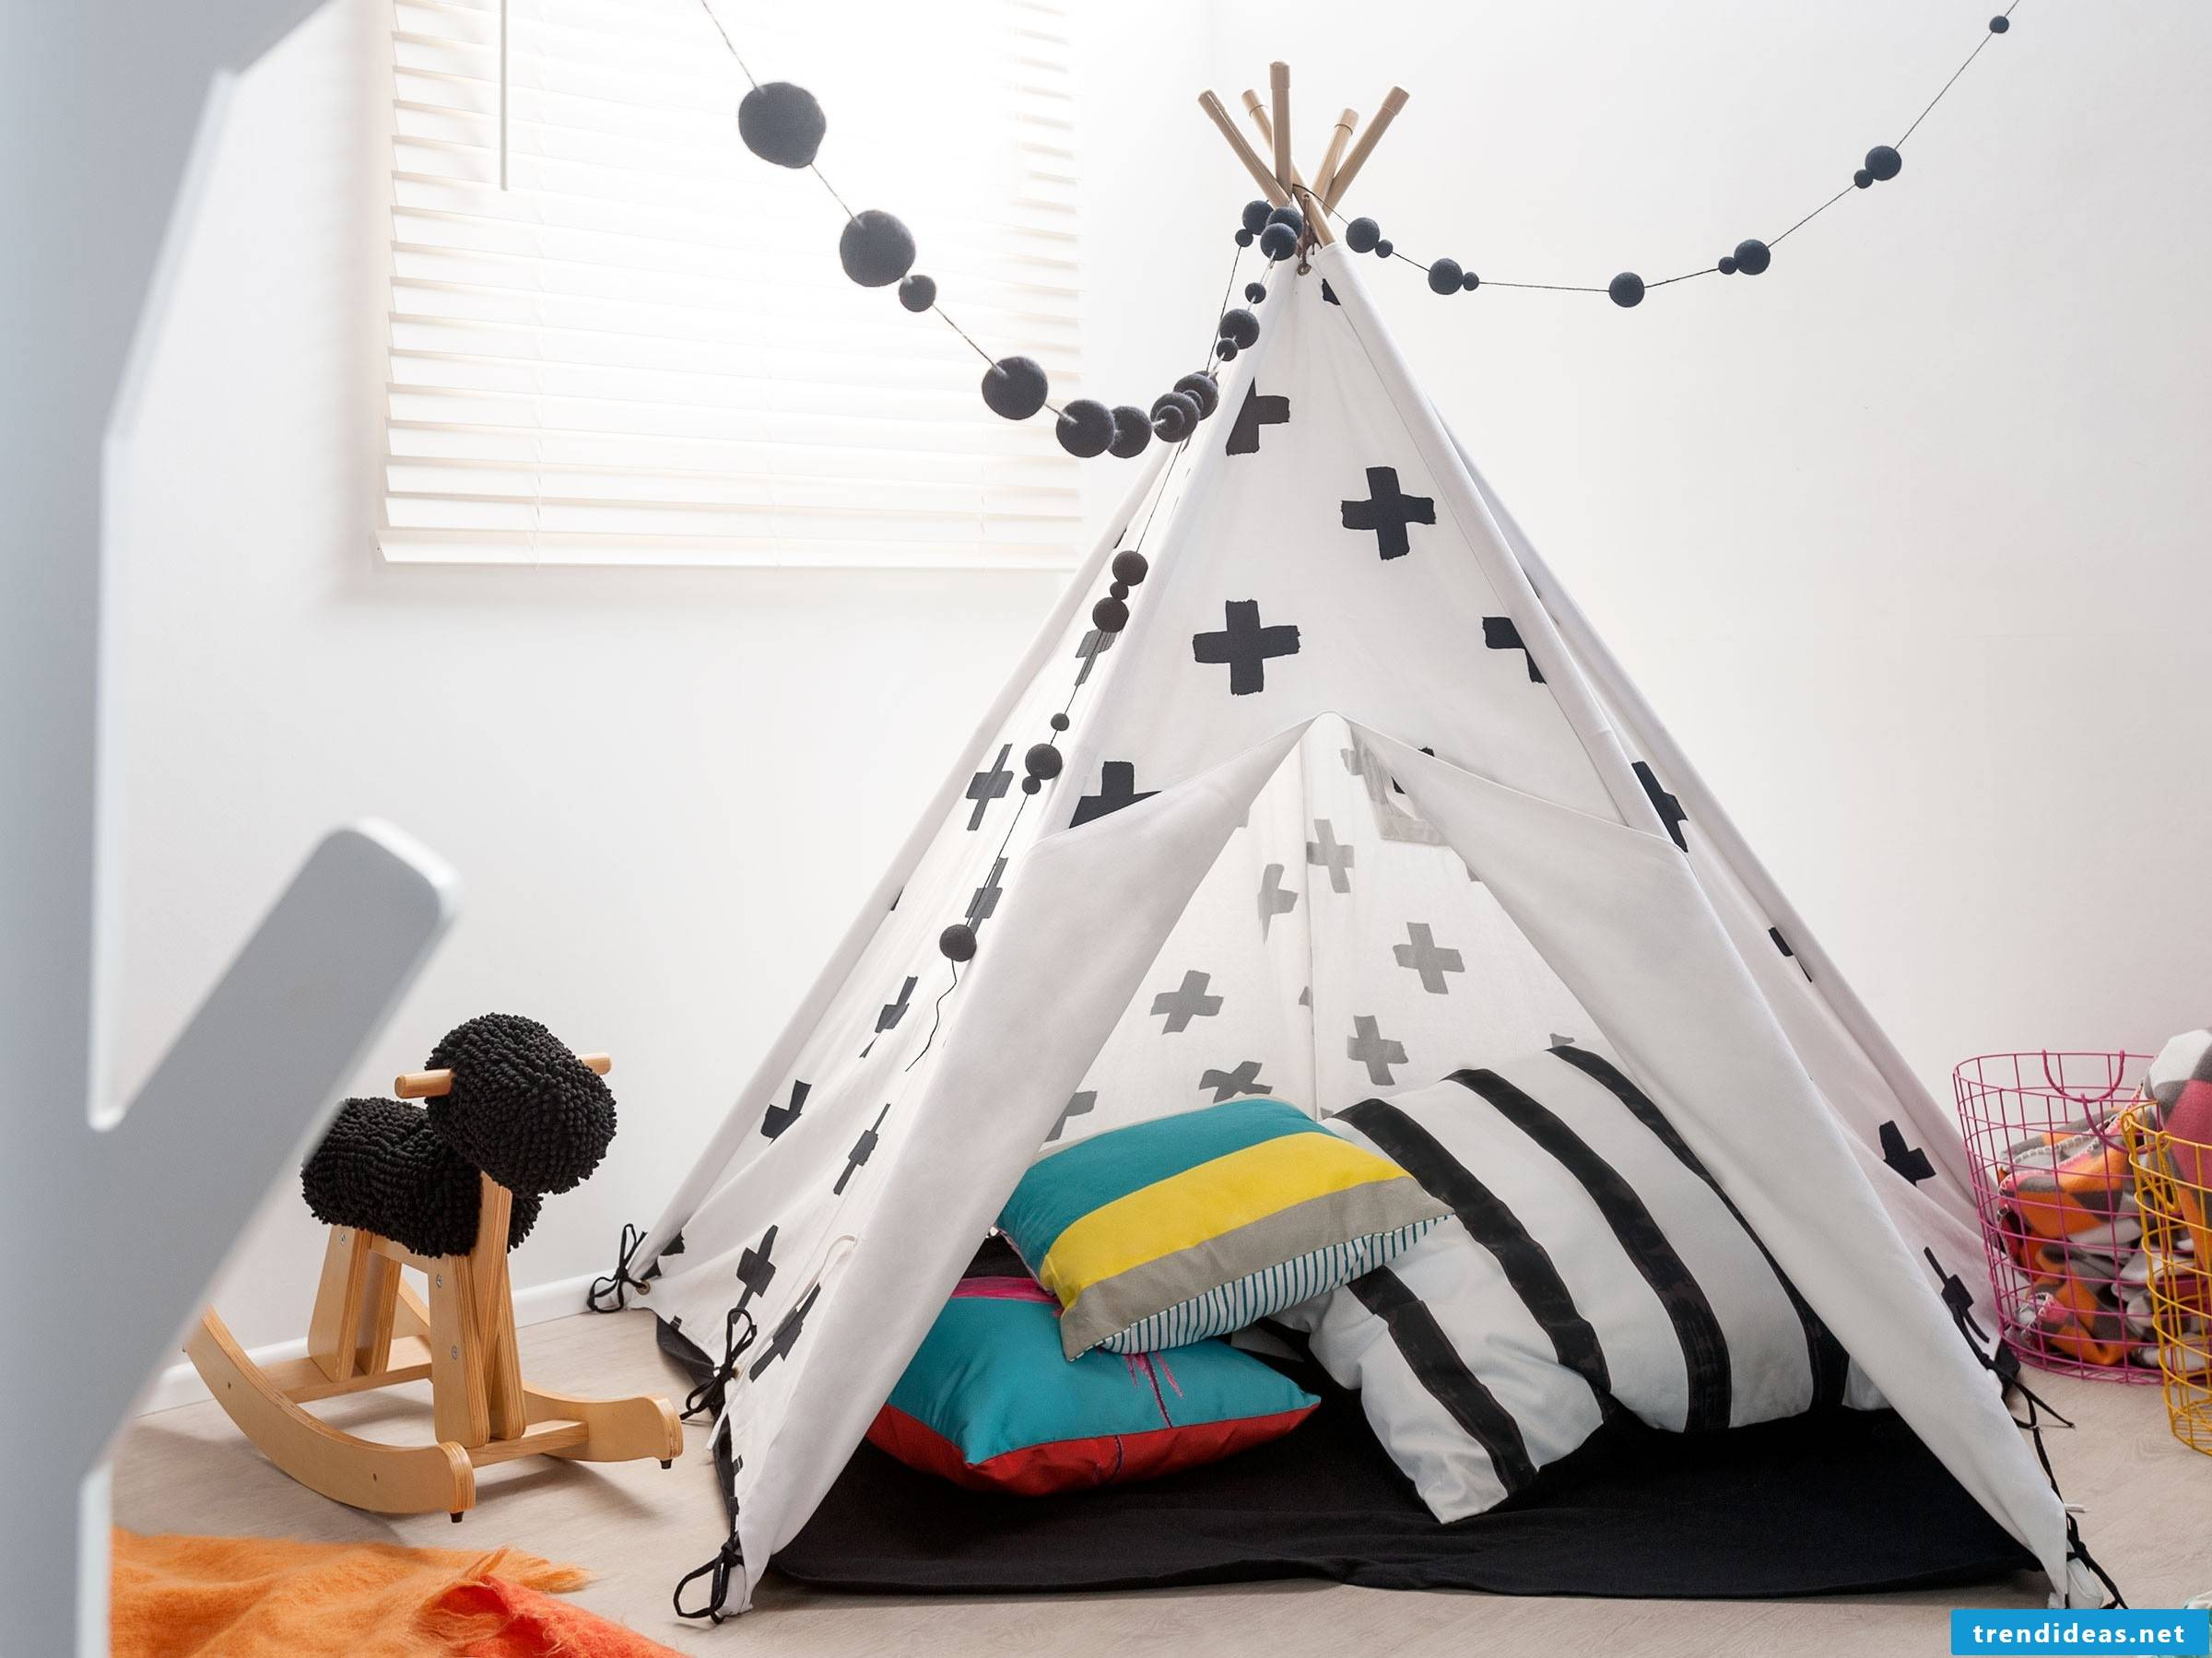 The best playground is a teepee tent - sew one yourself with our sewing ideas for beginners